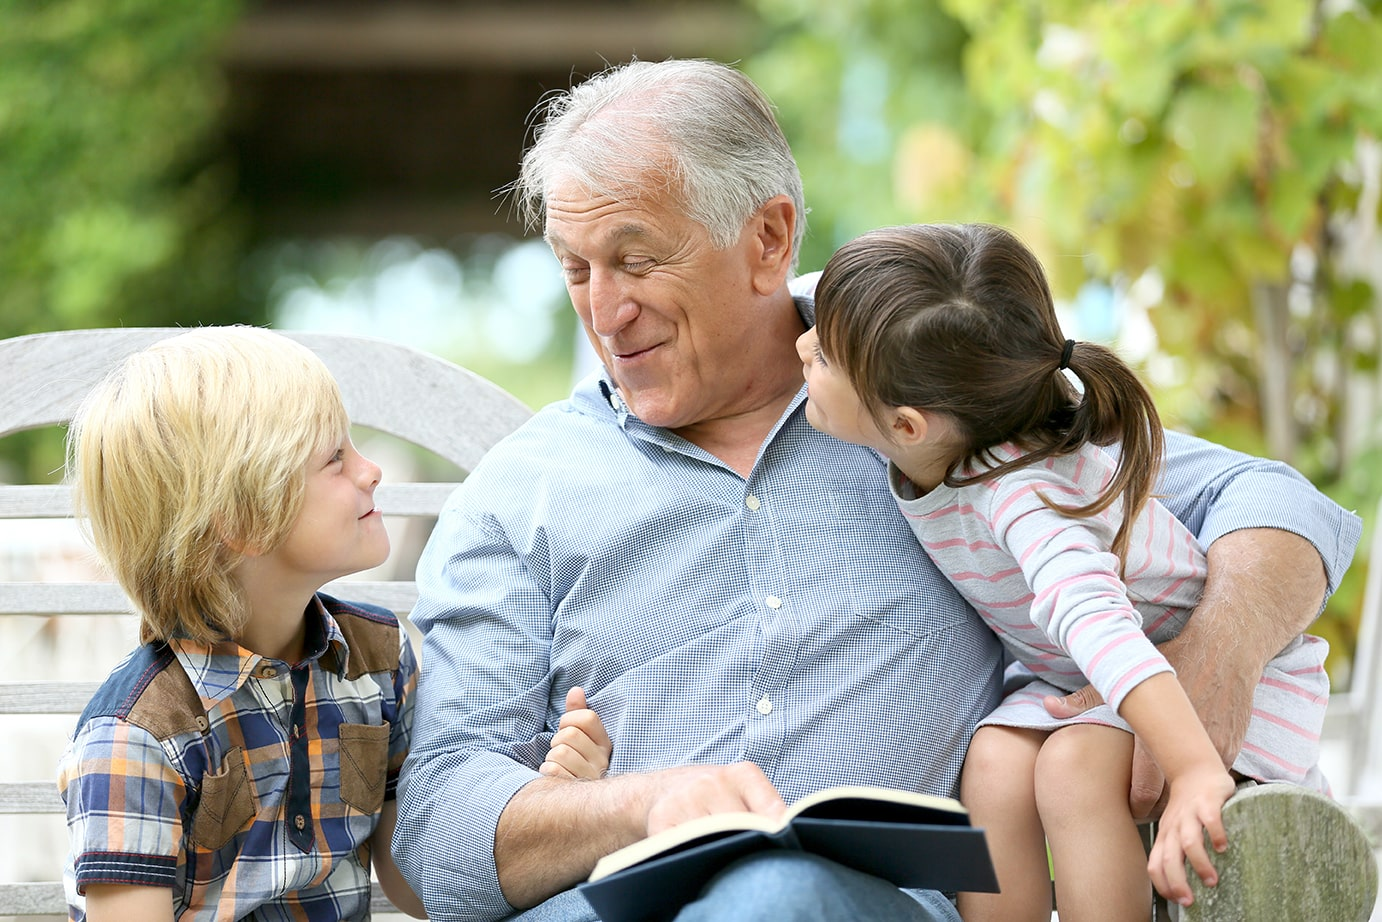 grandfather spending time with grandchildren